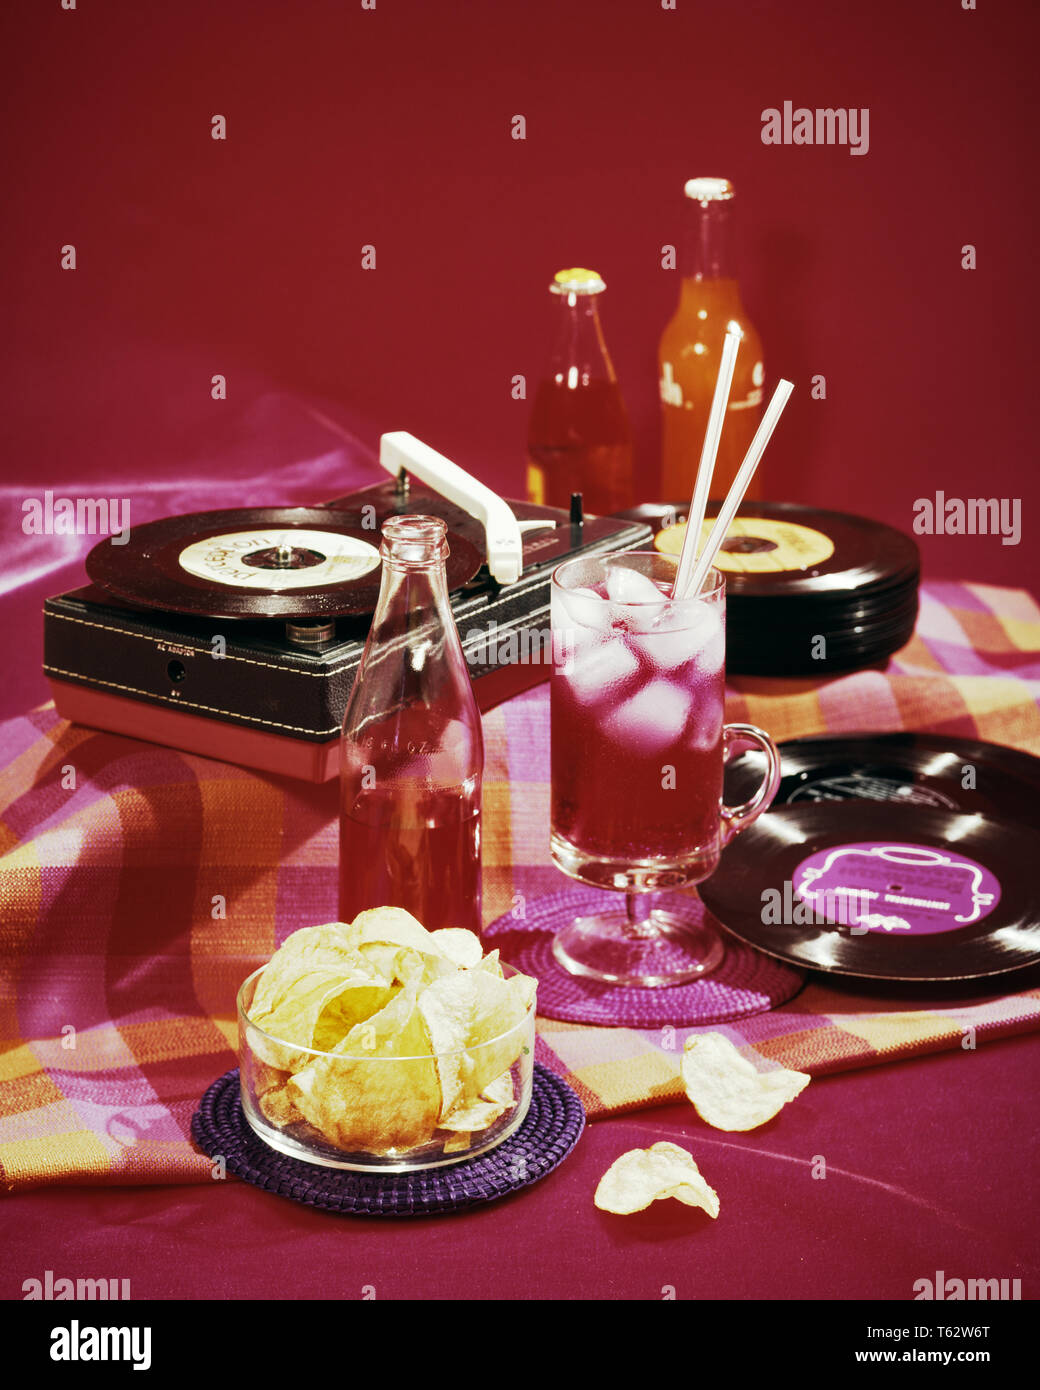 1950s 1960s 45 RPM RECORDS PORTABLE RECORD PLAYER AND PARTY FOOD SOFT DRINK POTATO CHIPS  - kf10212 ENS001 HARS SNACK FOOD PHONOGRAPHS RECORD PLAYERS RECORD PLAYER 45 RPM FAST FOODS PARTIES CHIP STILL LIFE COLD DRINKS ICE CUBE ICE CUBES NOURISHMENT SOFT DRINKS TEENAGED COLD DRINK 45RPM 45S JUNK FOOD PARTY FOOD OLD FASHIONED POTATO CHIP POTATO CHIPS Stock Photo